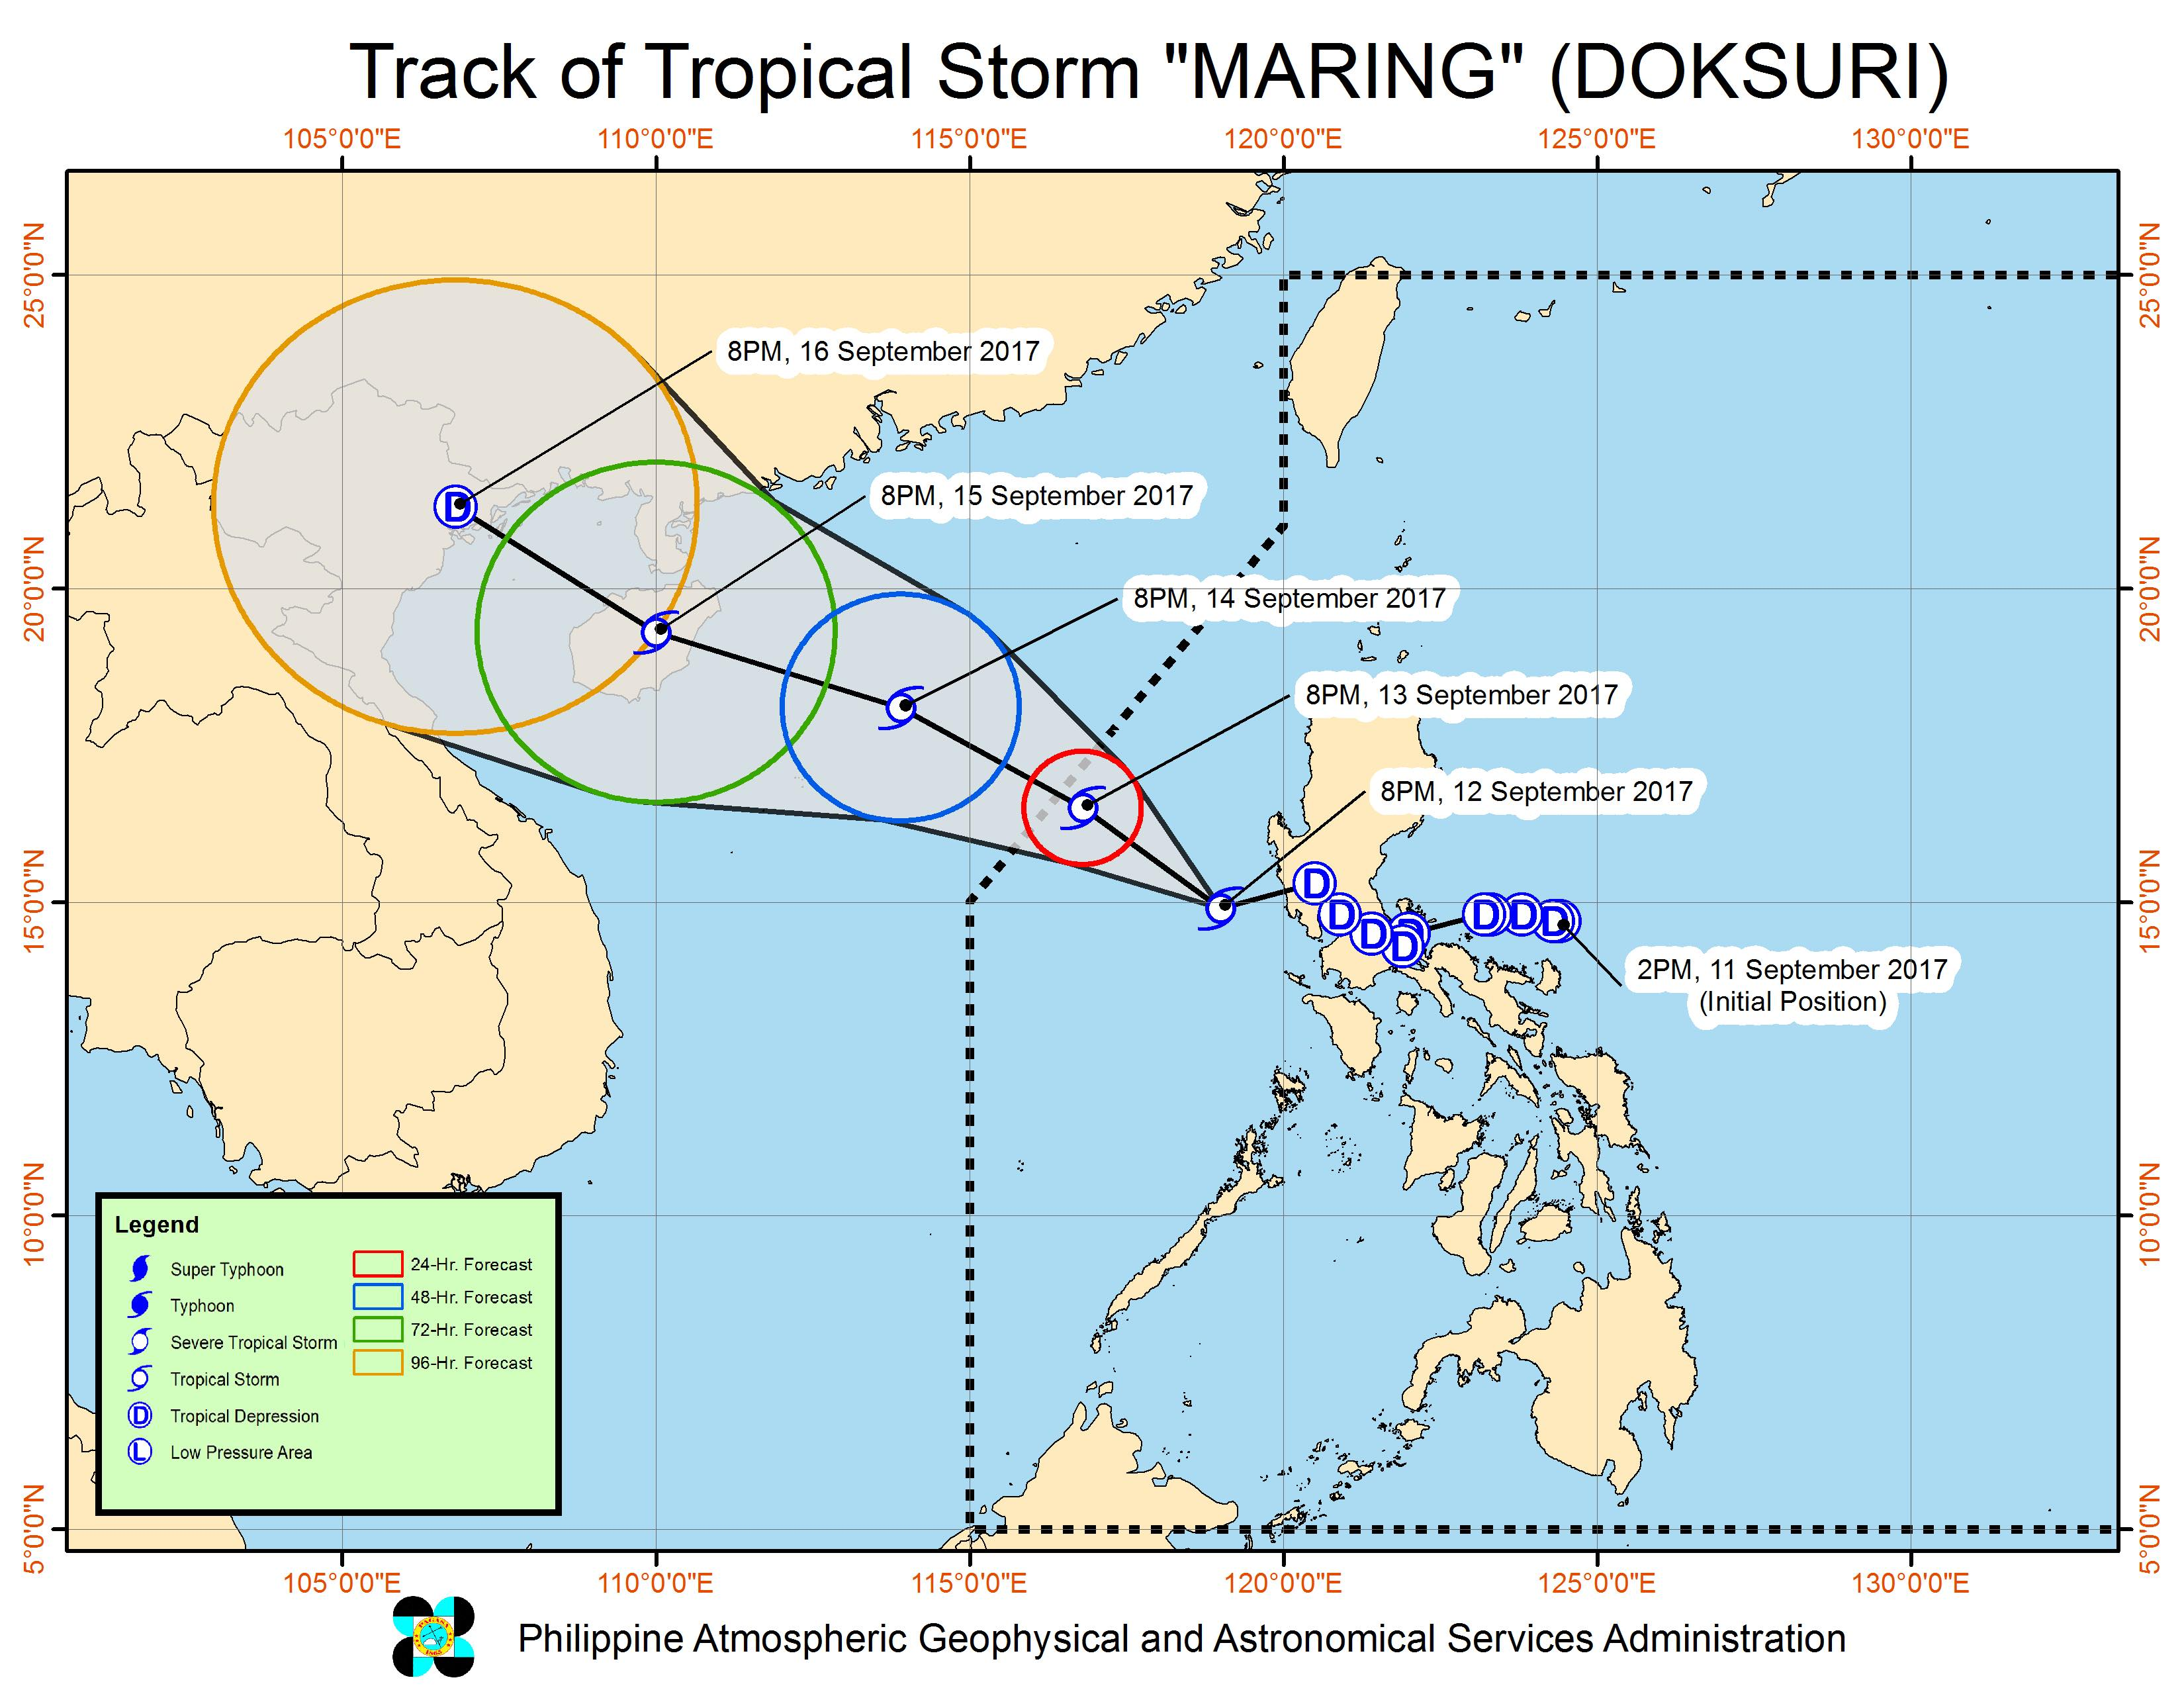 Forecast track of Tropical Storm Maring as of September 12, 11 pm. Image courtesy of PAGASA